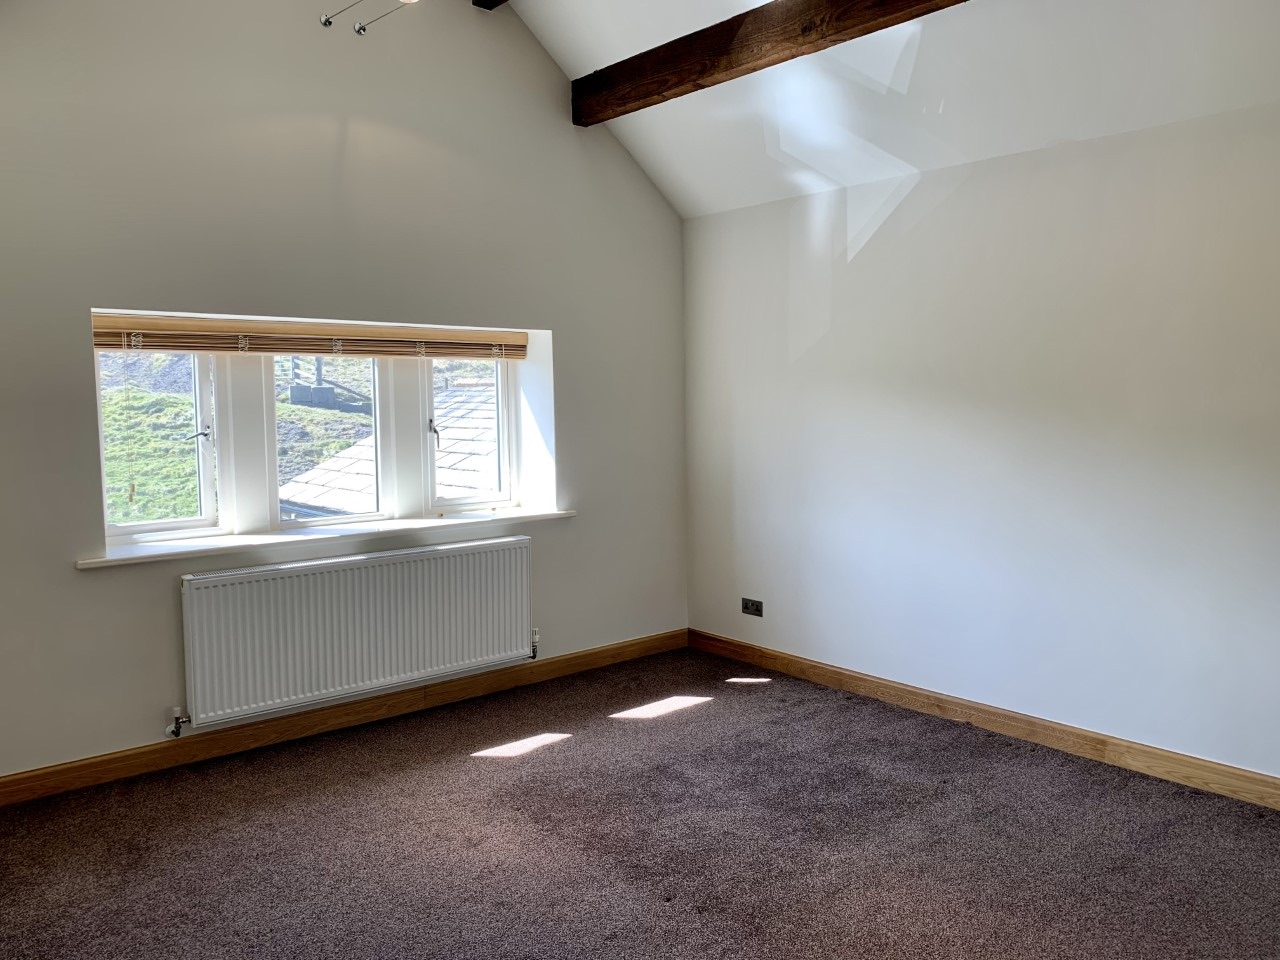 3 bedroom detached house For Sale in Todmorden - Photograph 23.